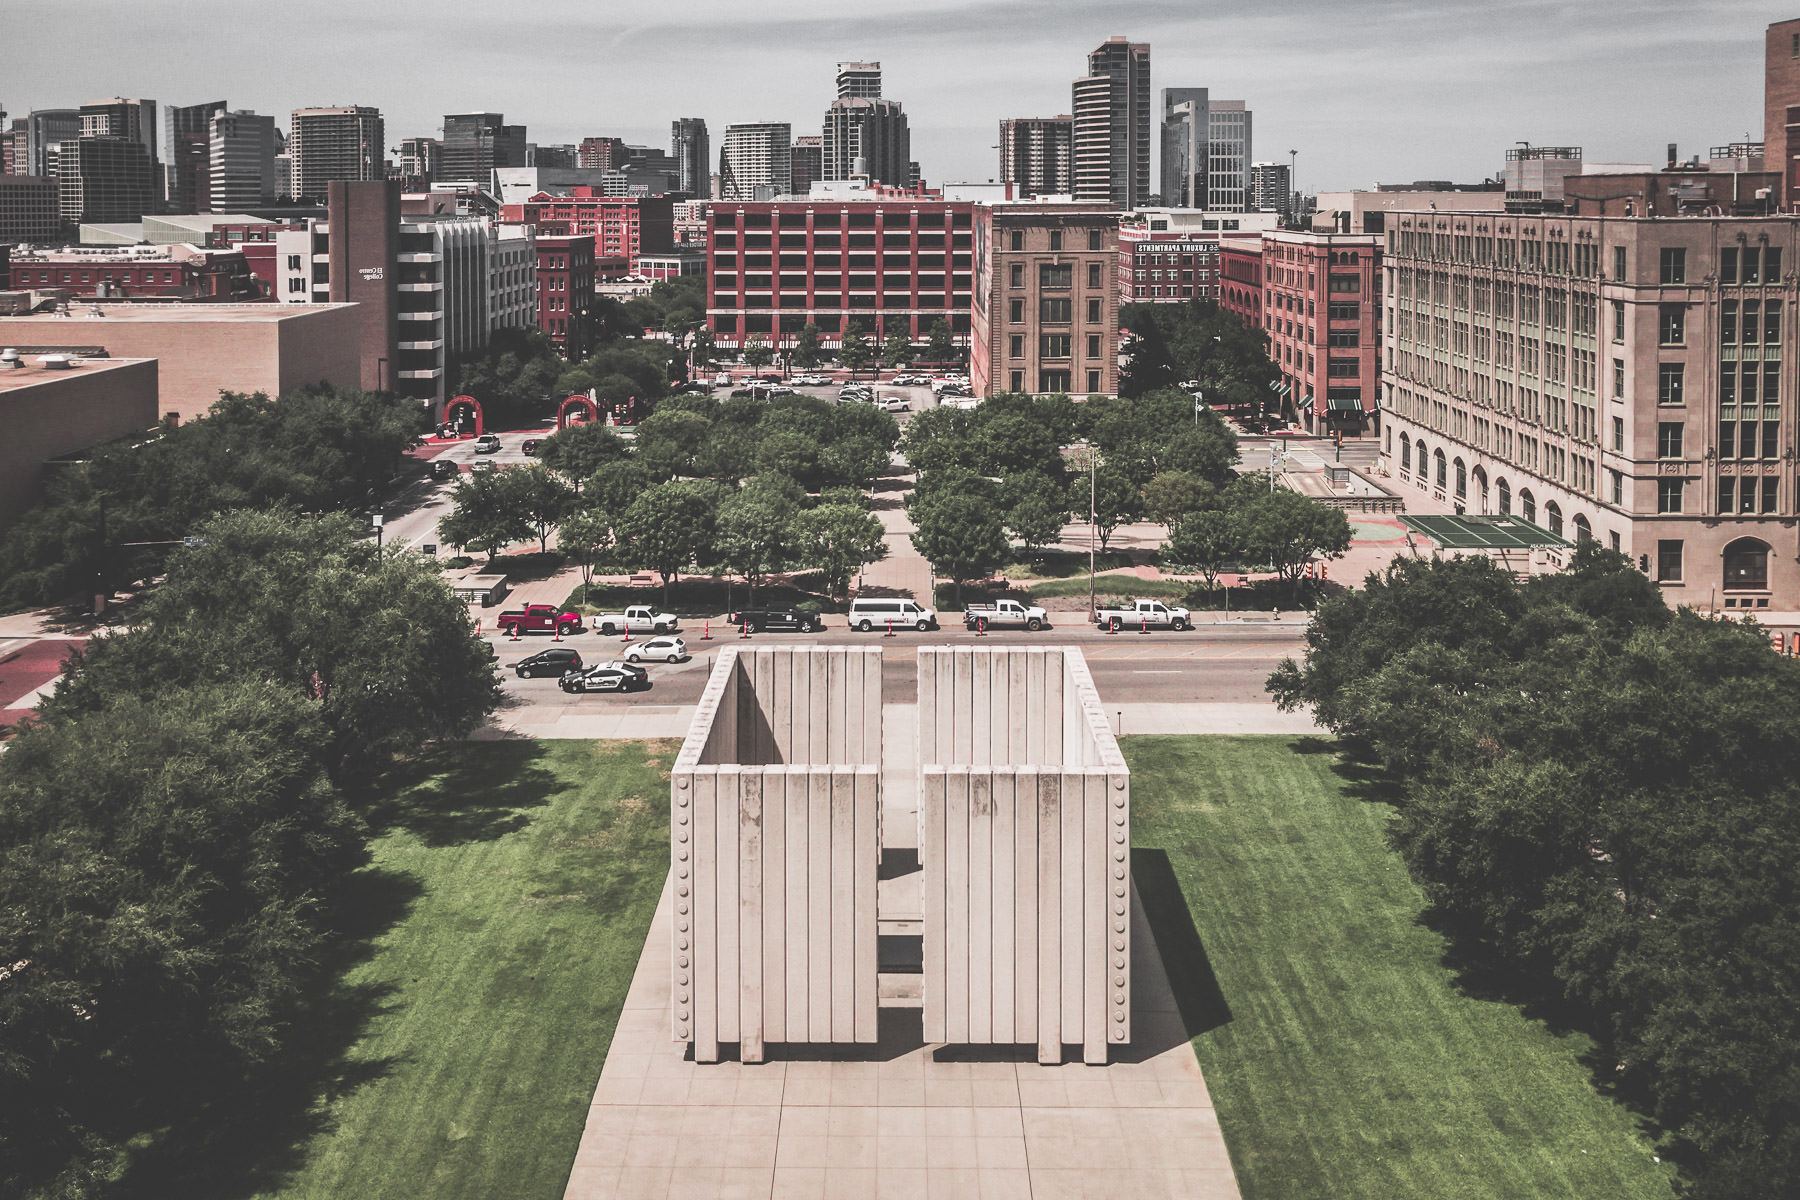 An aerial view of Dallas'—the site of his assassination—memorial to President John F. Kennedy, a cenotaph designed by architect Philip Johnson.